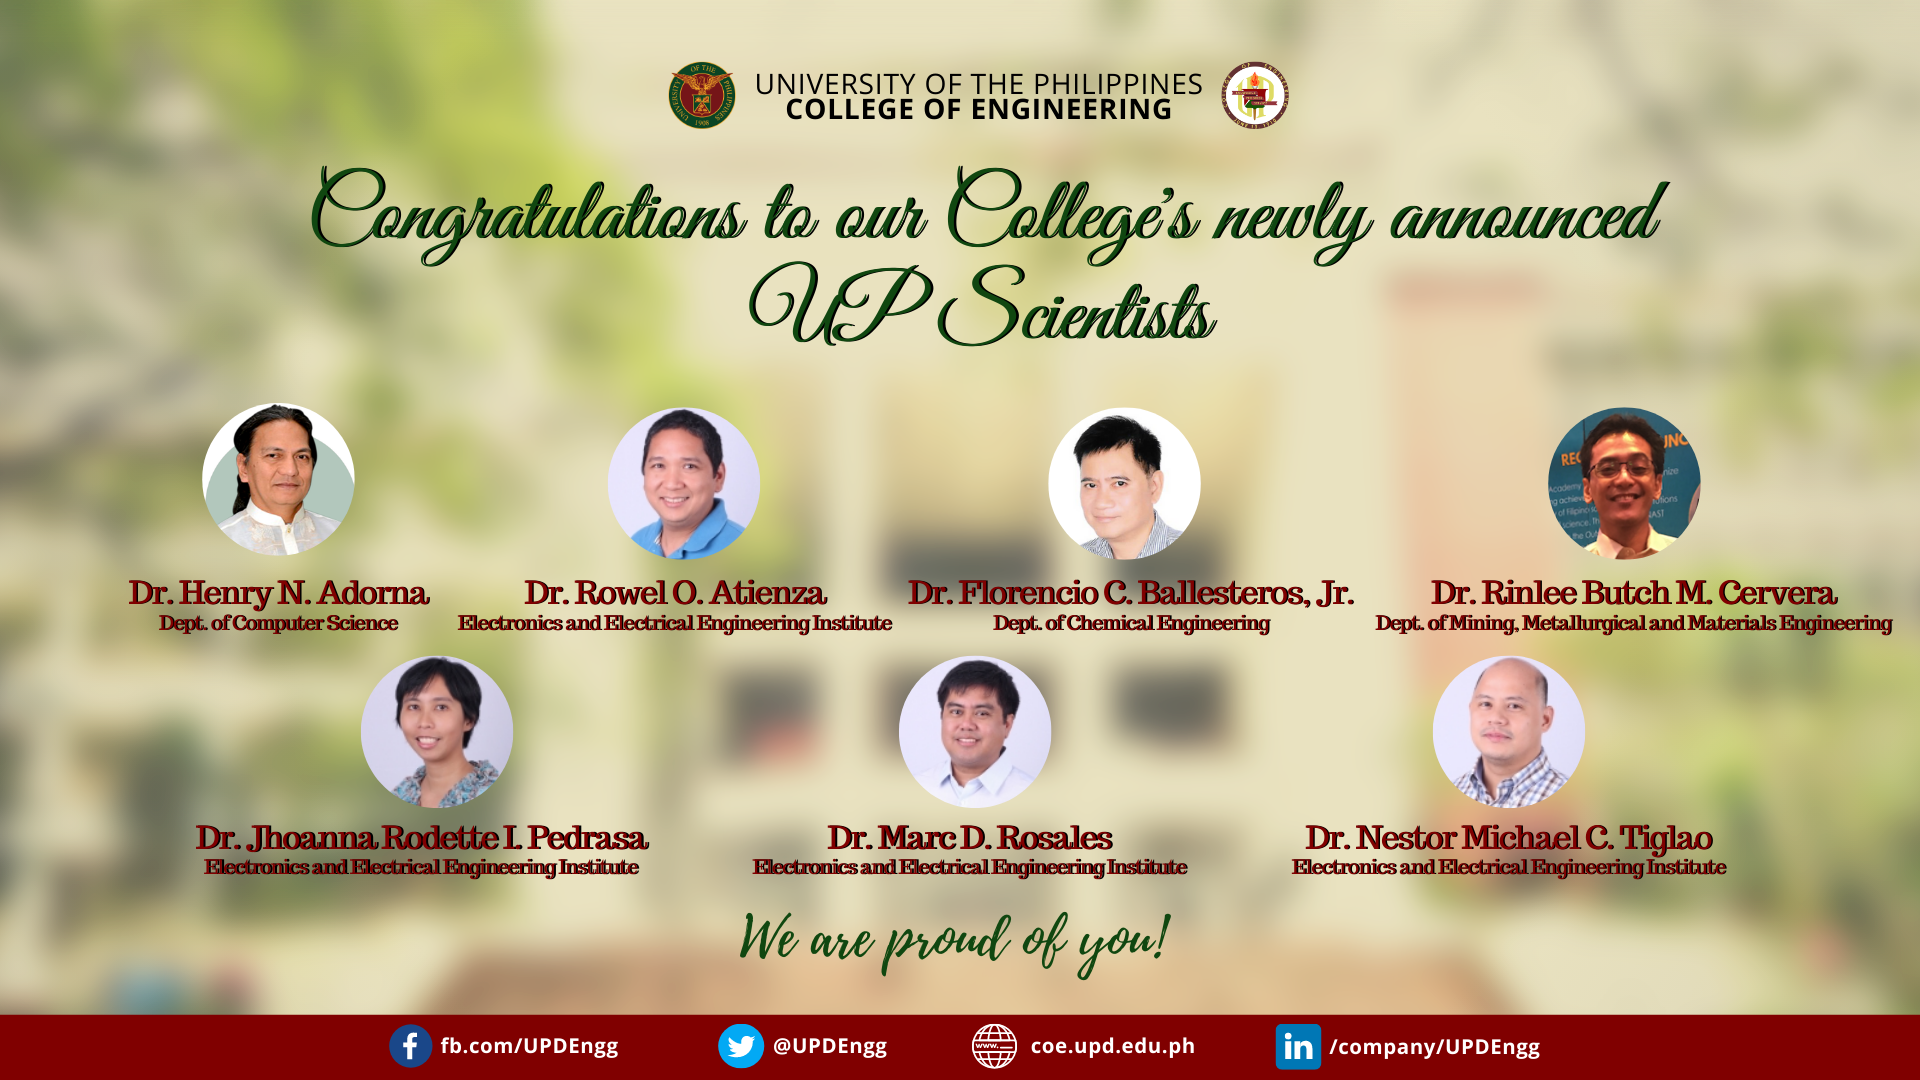 7 UP CoE Professors Announced as UP Scientists